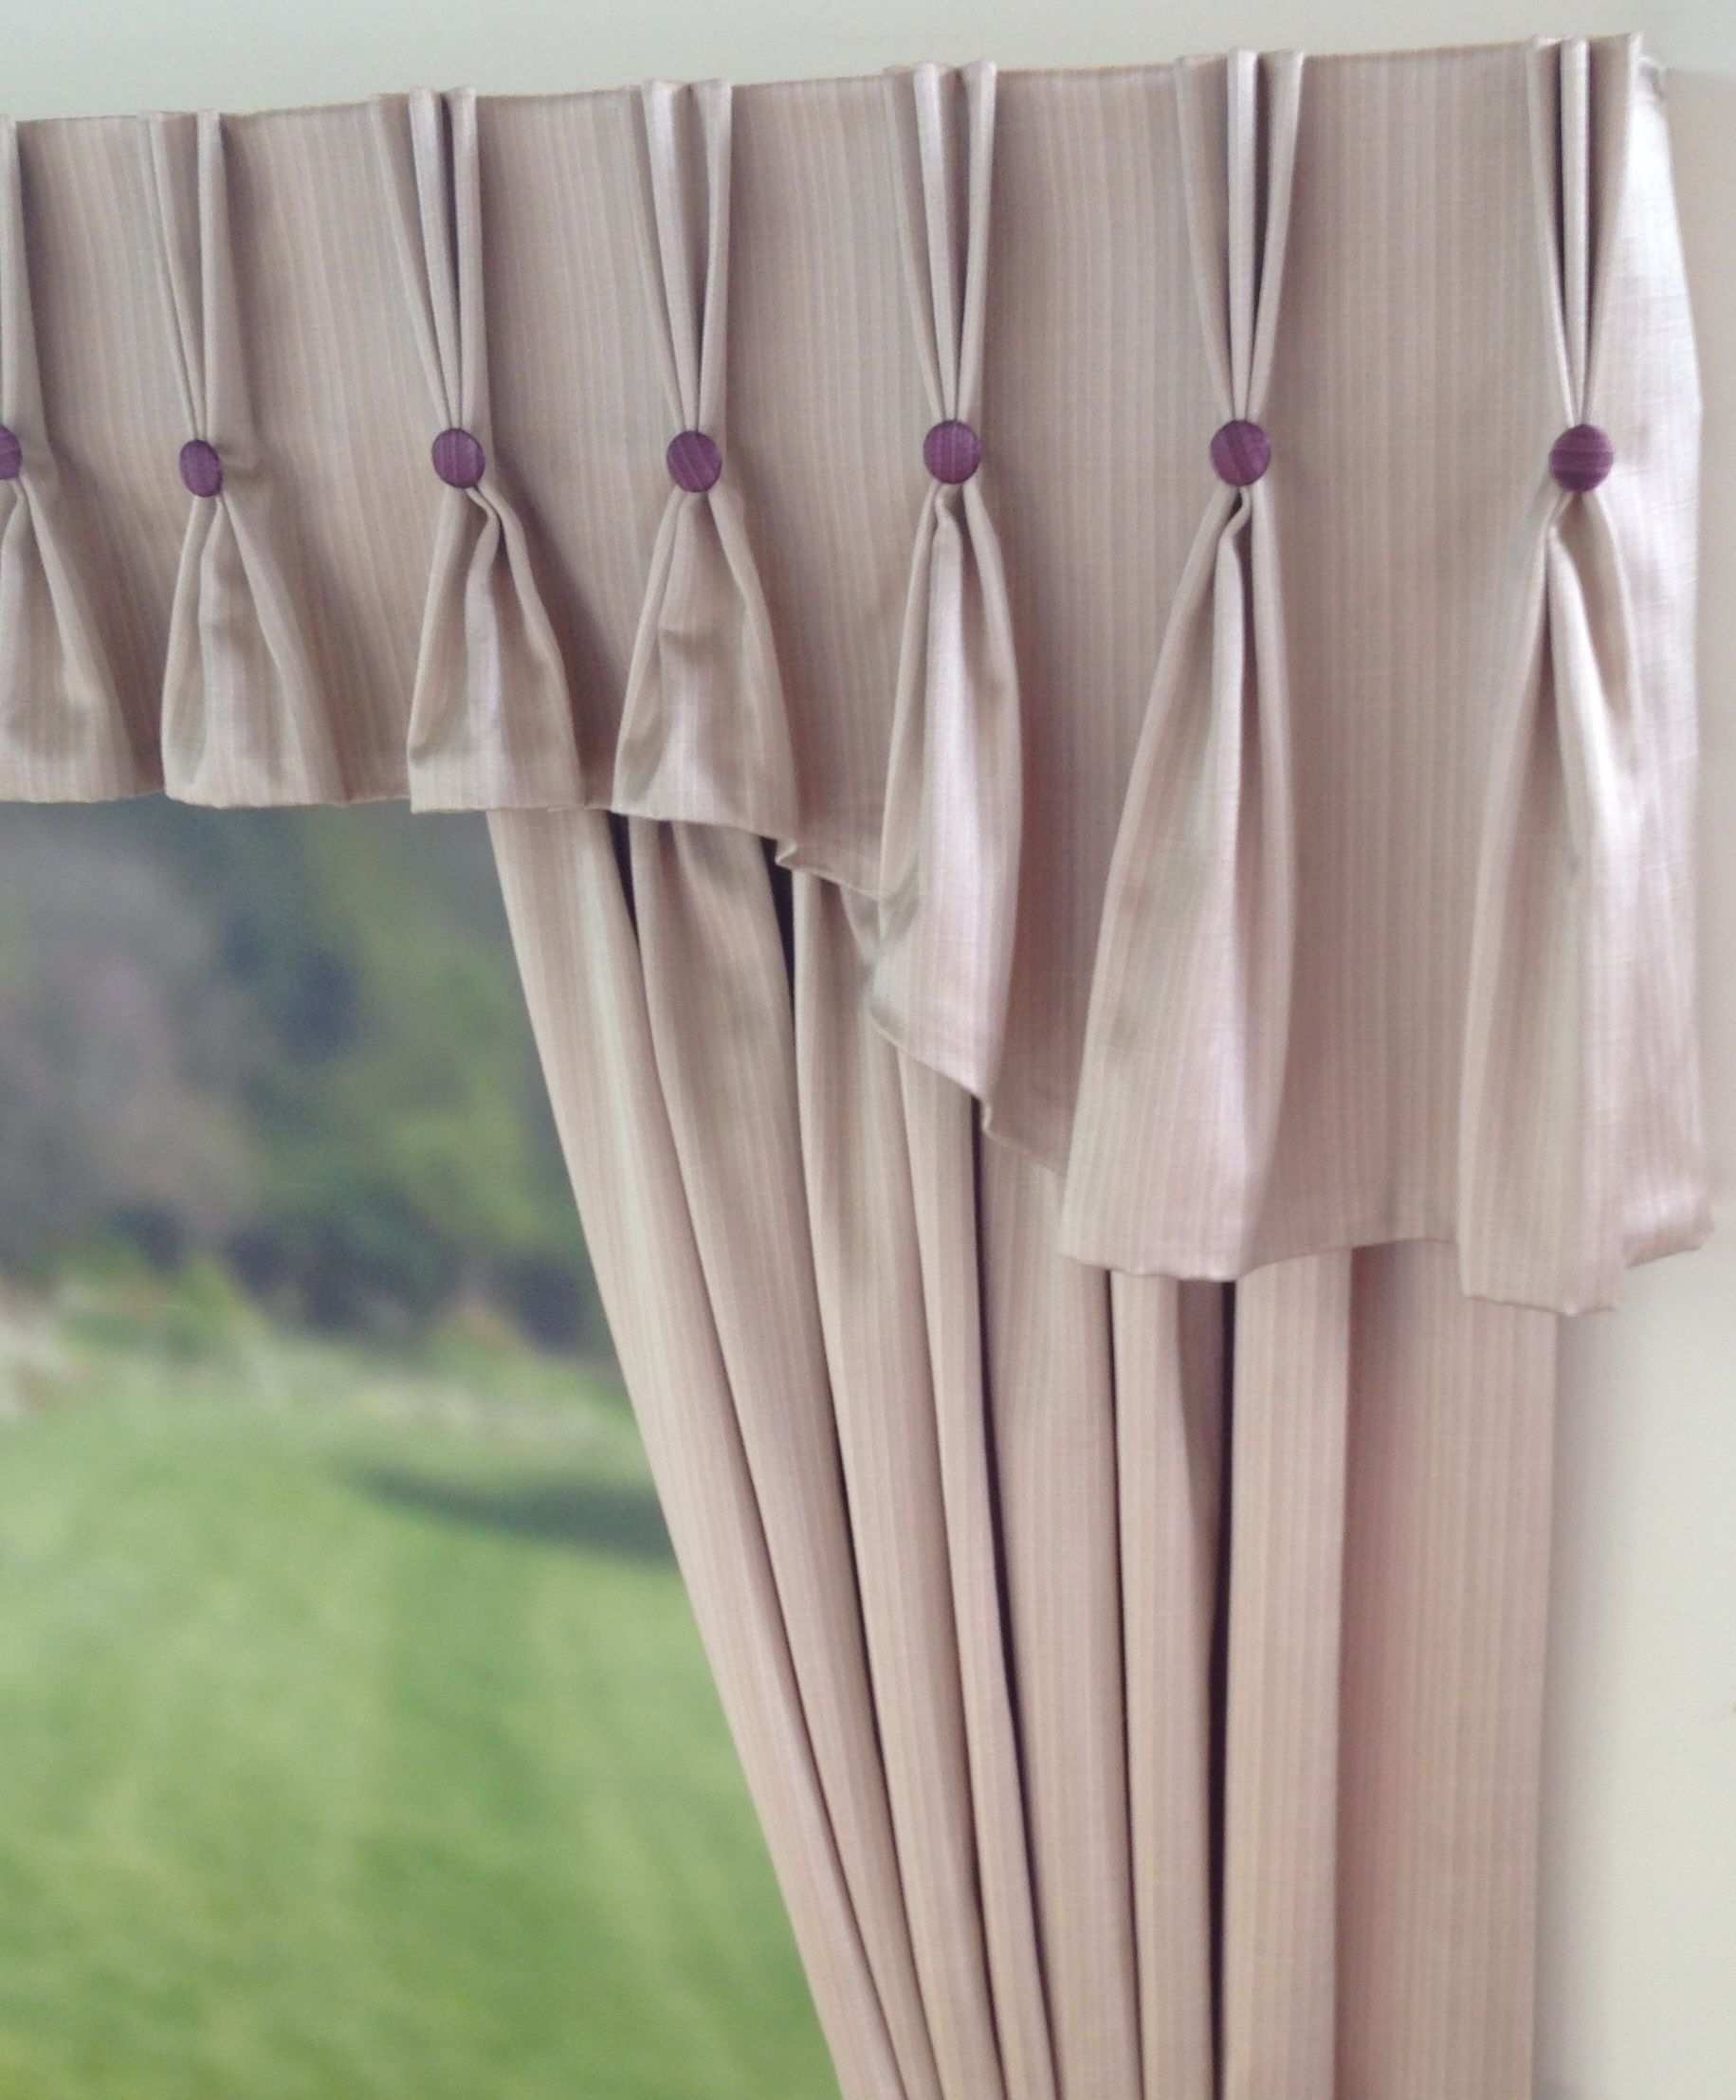 curtain drapes decorating penney with jcpennycurtains jcpenney draperies and valances valance curtains jc treatments home elegant window interior jcp ideas